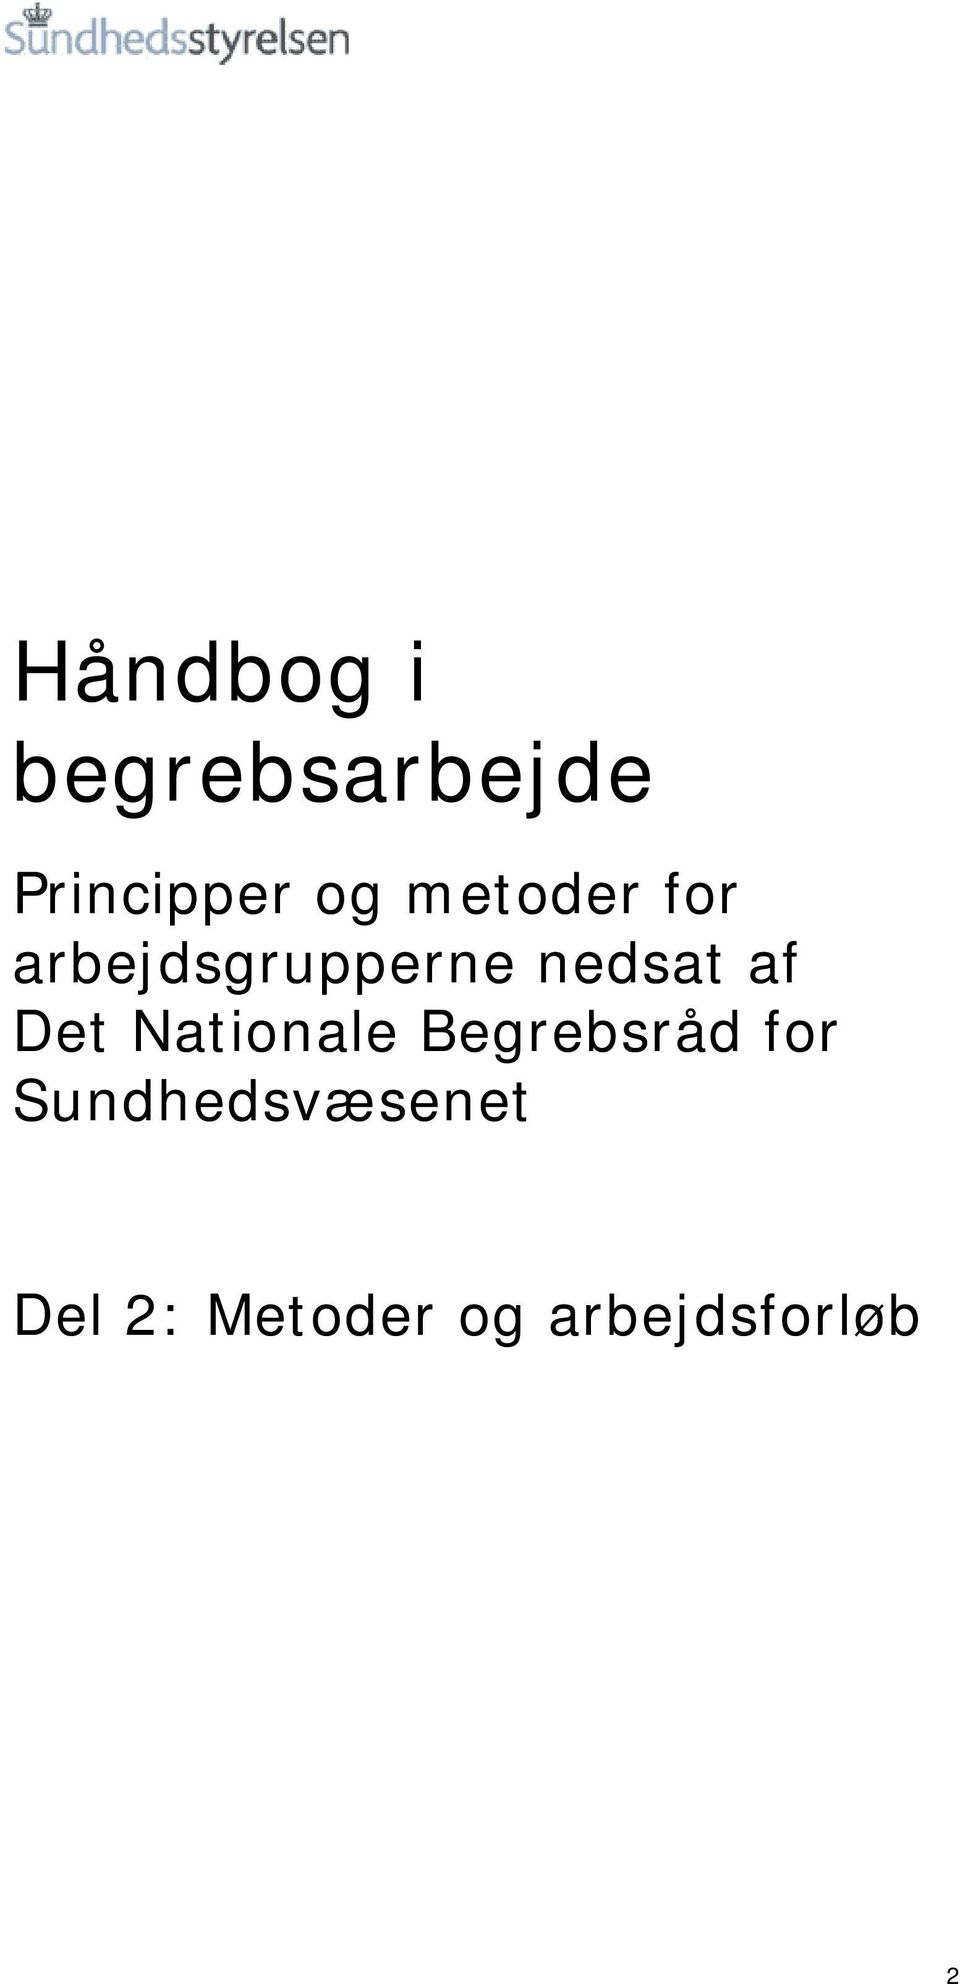 Det Nationale Begrebsråd for